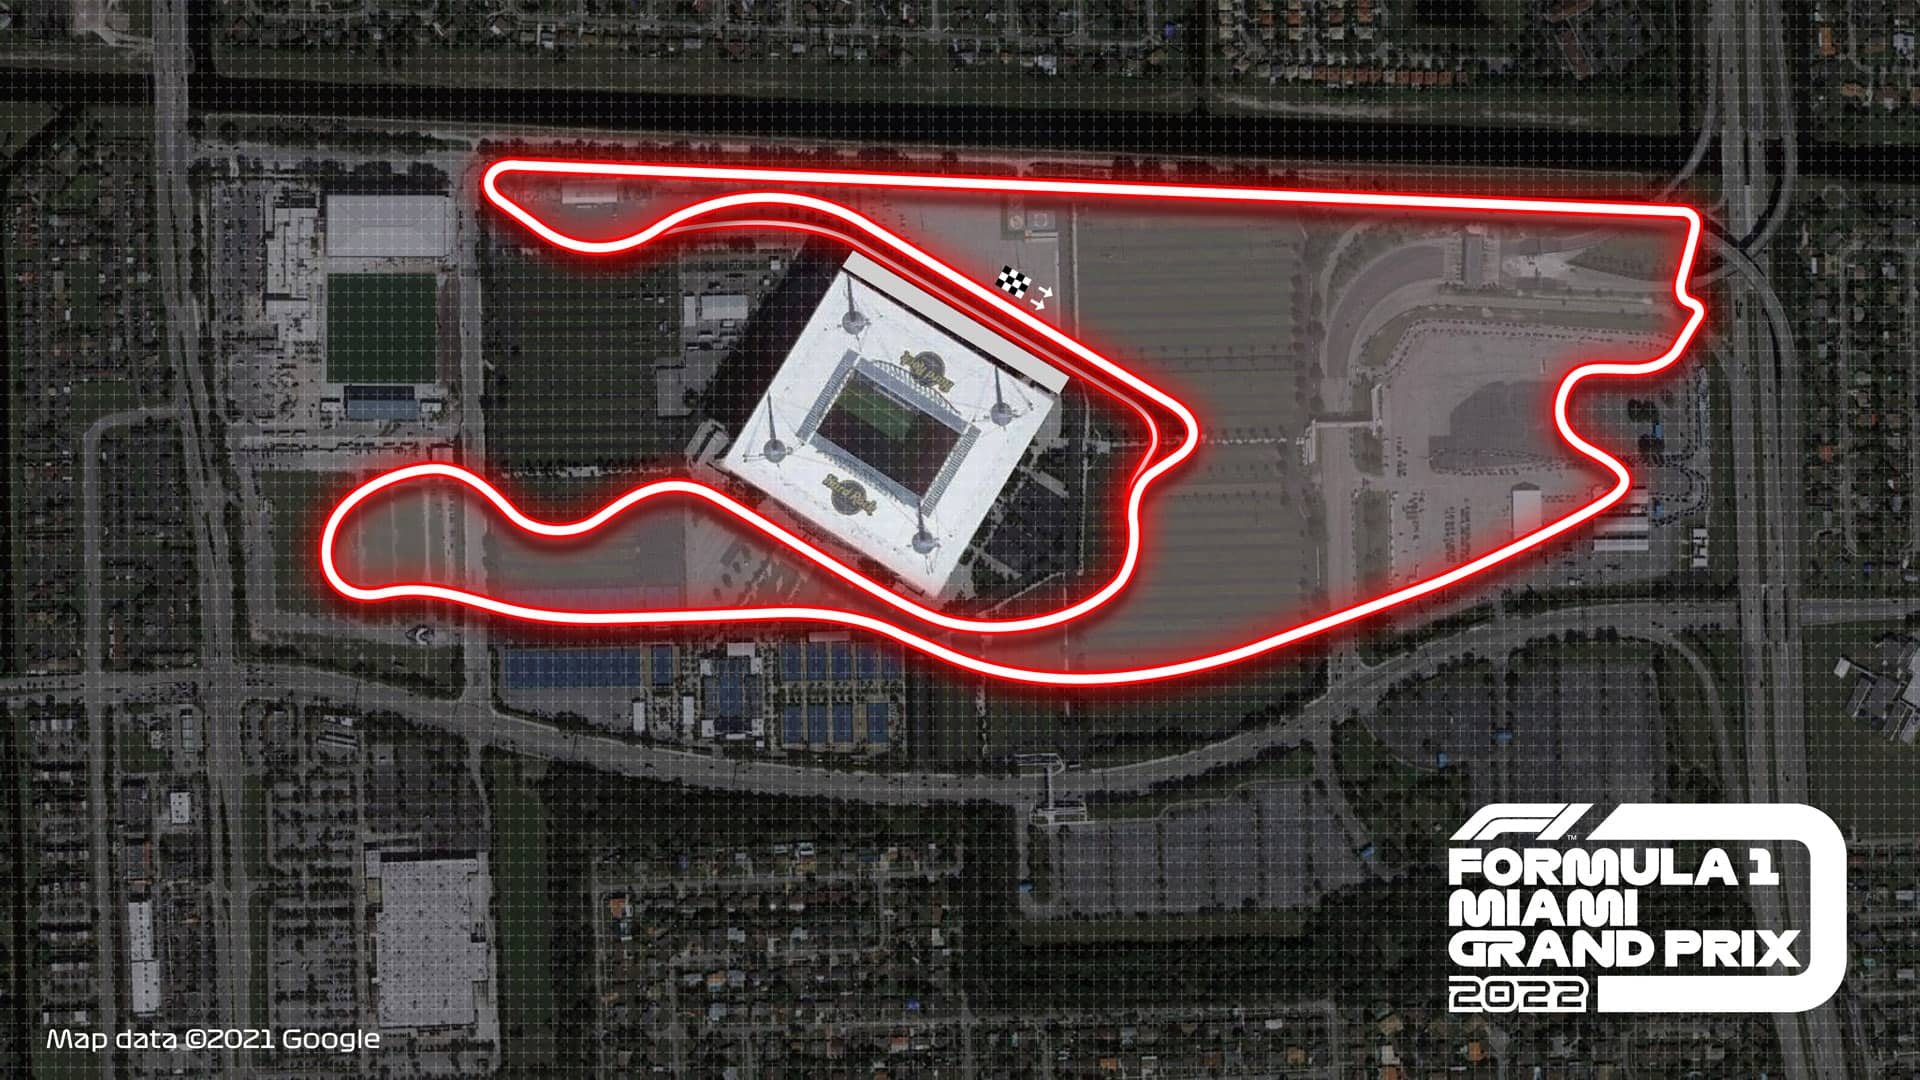 Las Vegas Calendar 2022.Miami Grand Prix To Join F1 Calendar In 2022 With Exciting New Circuit Planned Formula 1